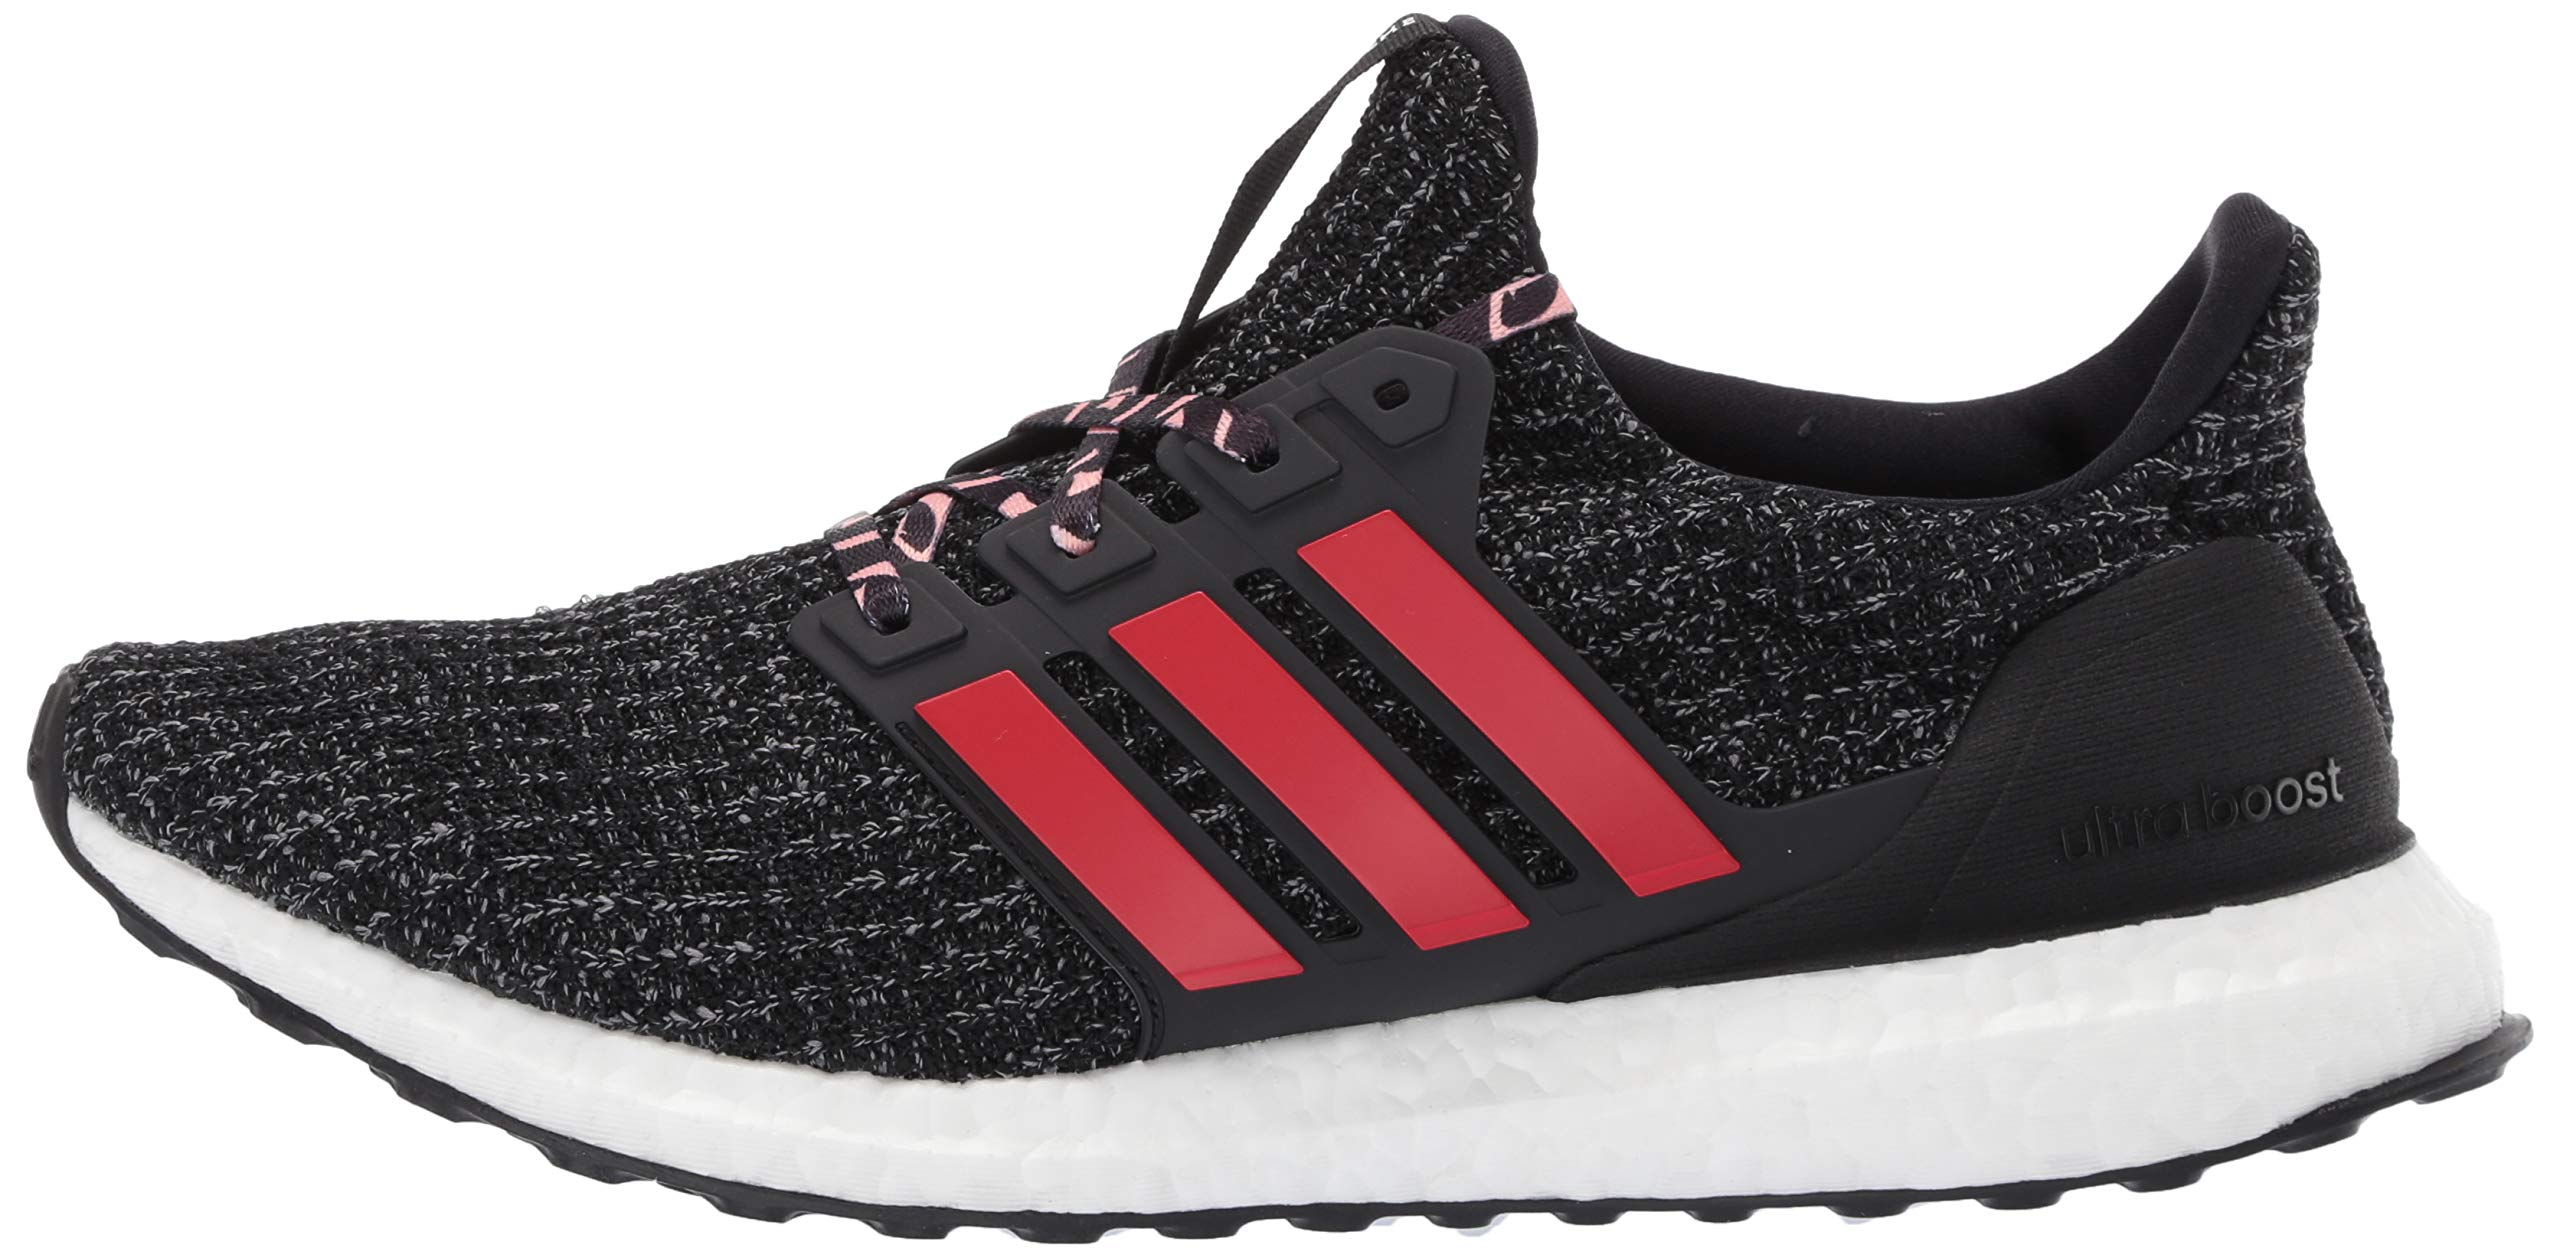 adidas Men's Ultraboost, Black/Scarlet/Grey 4 M US by adidas (Image #5)